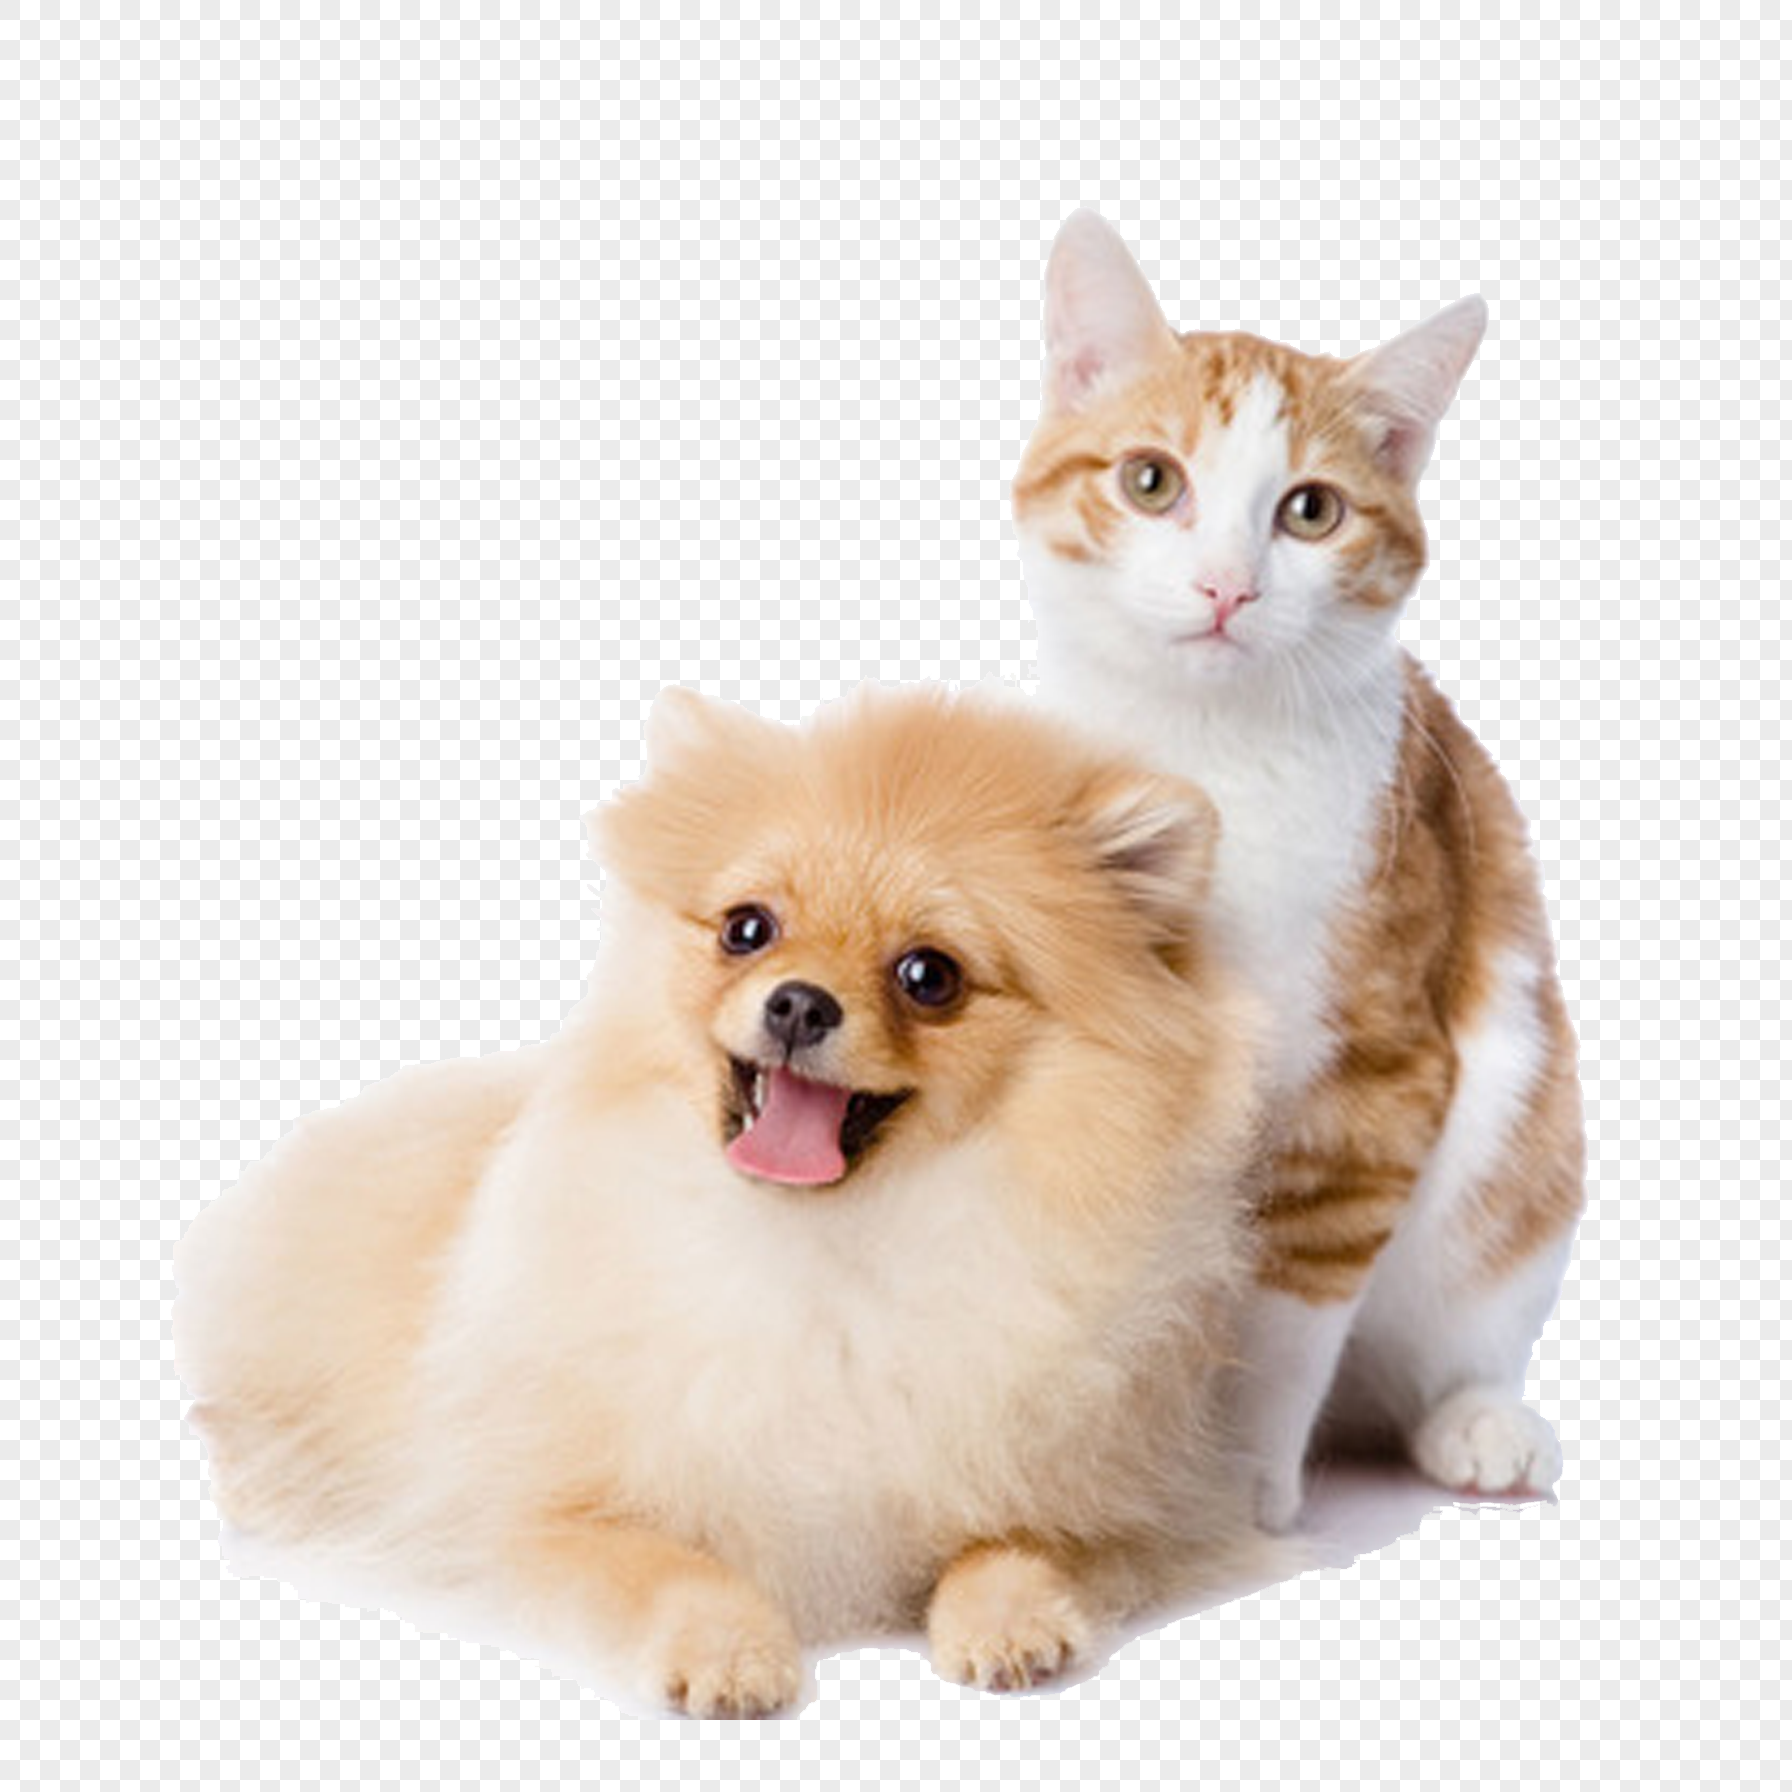 cat and dog png image picture free download 400281977